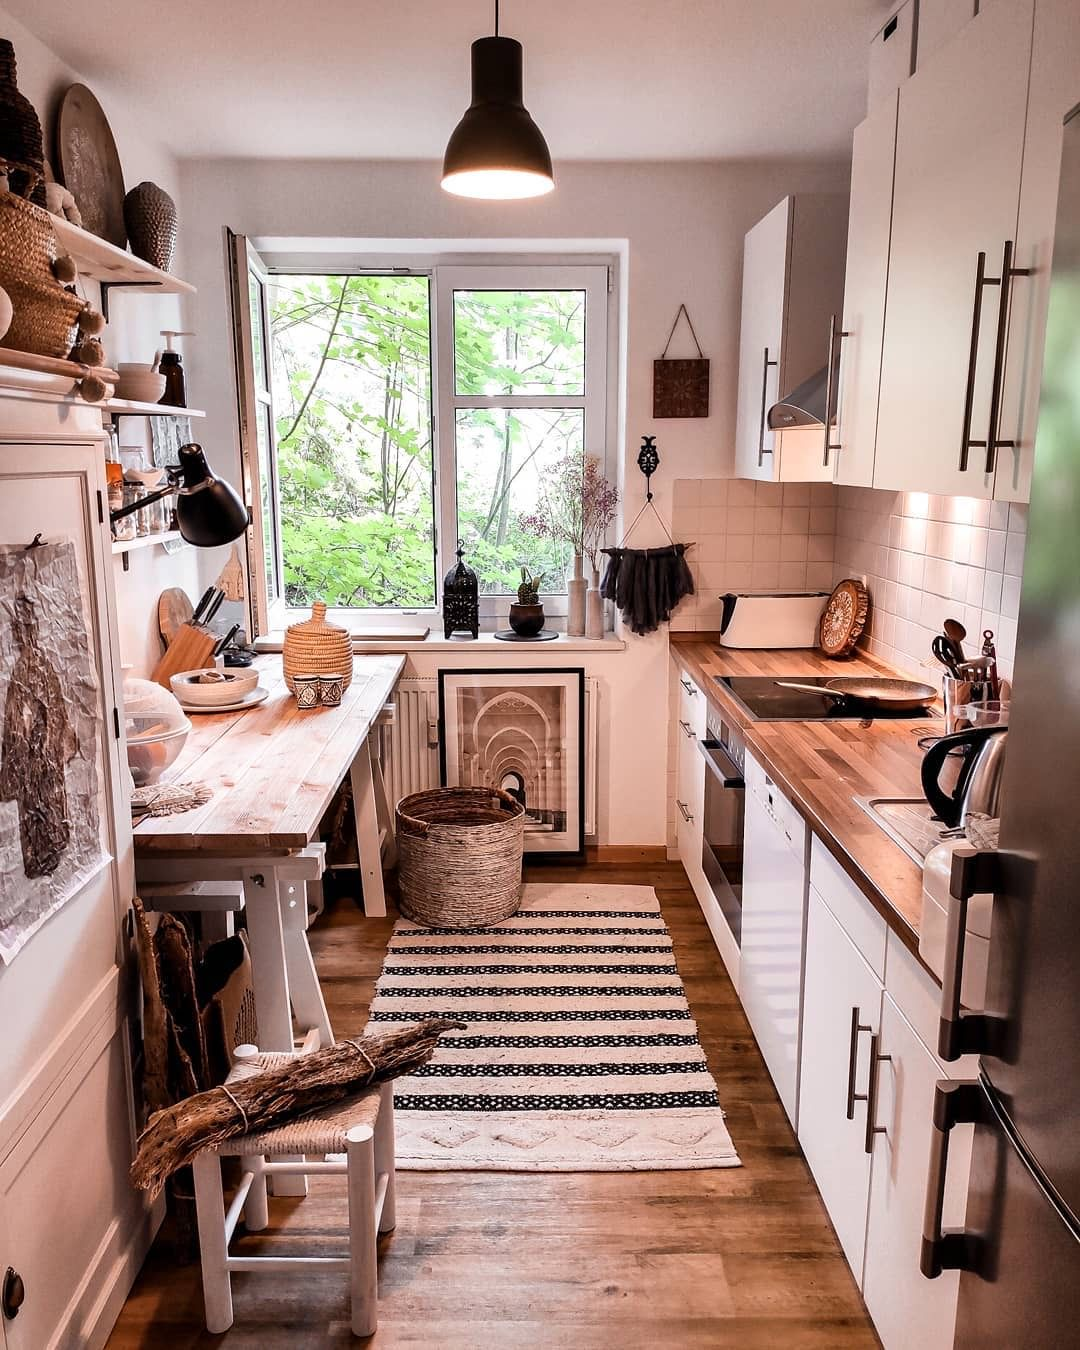 pin by emily robinson on flat inspo kitchen interior bohemian kitchen interior design kitchen on kitchen interior boho id=88326